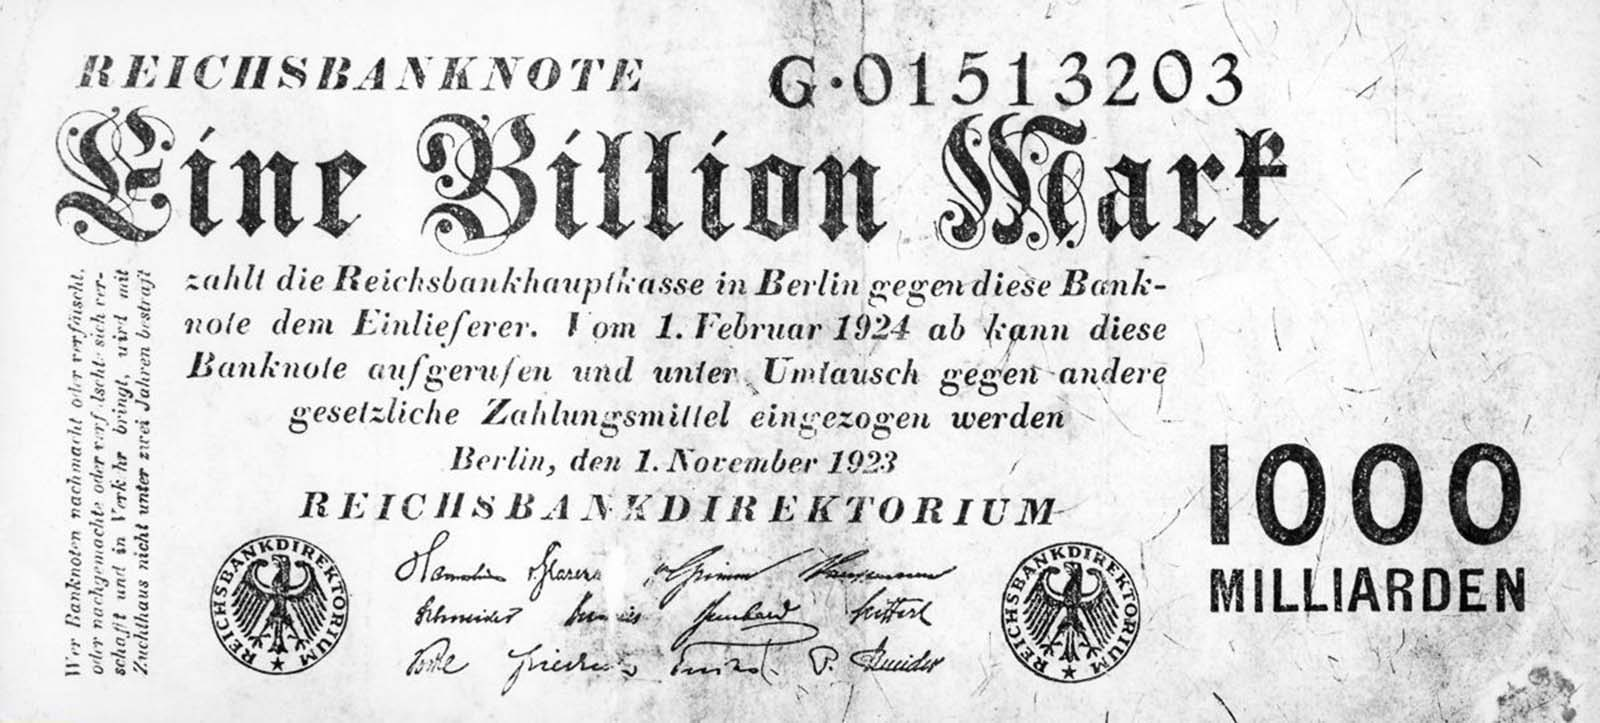 A one billion mark note. 1923.